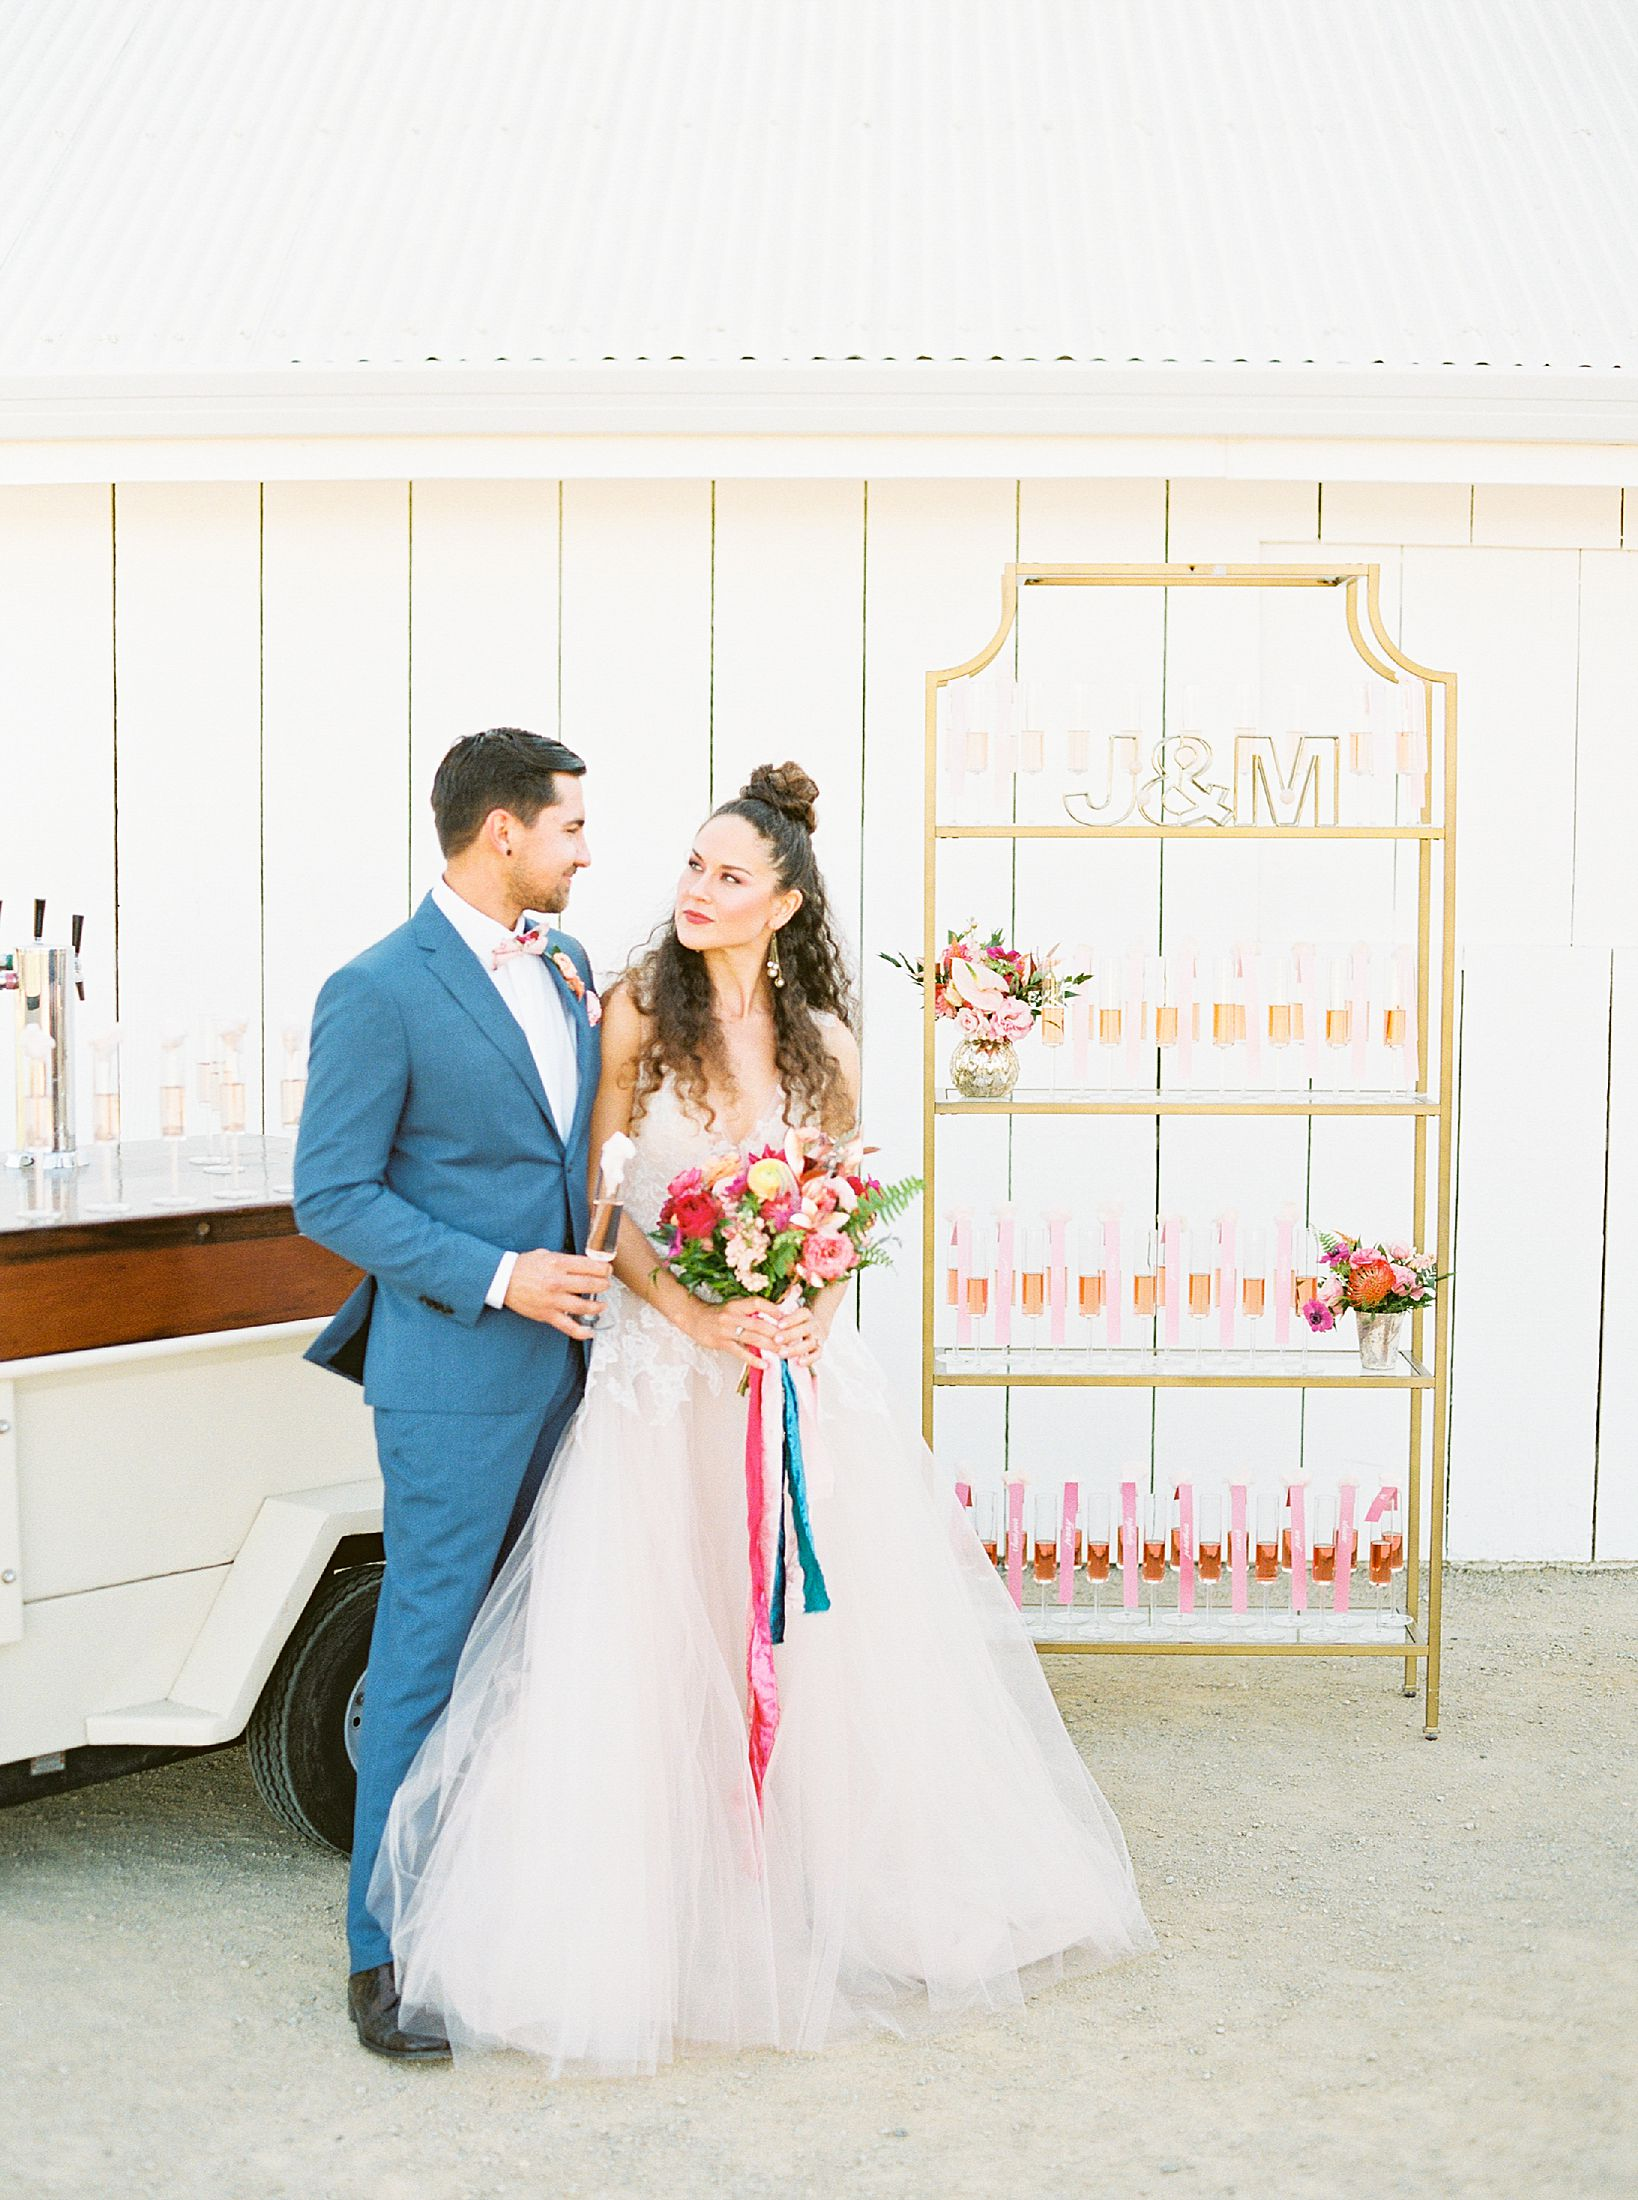 White Barn Edna Valley Wedding Inspiration - San Luis Obispo Wedding - Featured on Green Wedding Shoes - Ashley Baumgartner - FM Events SLO - SLO Wedding Photographer_0044.jpg